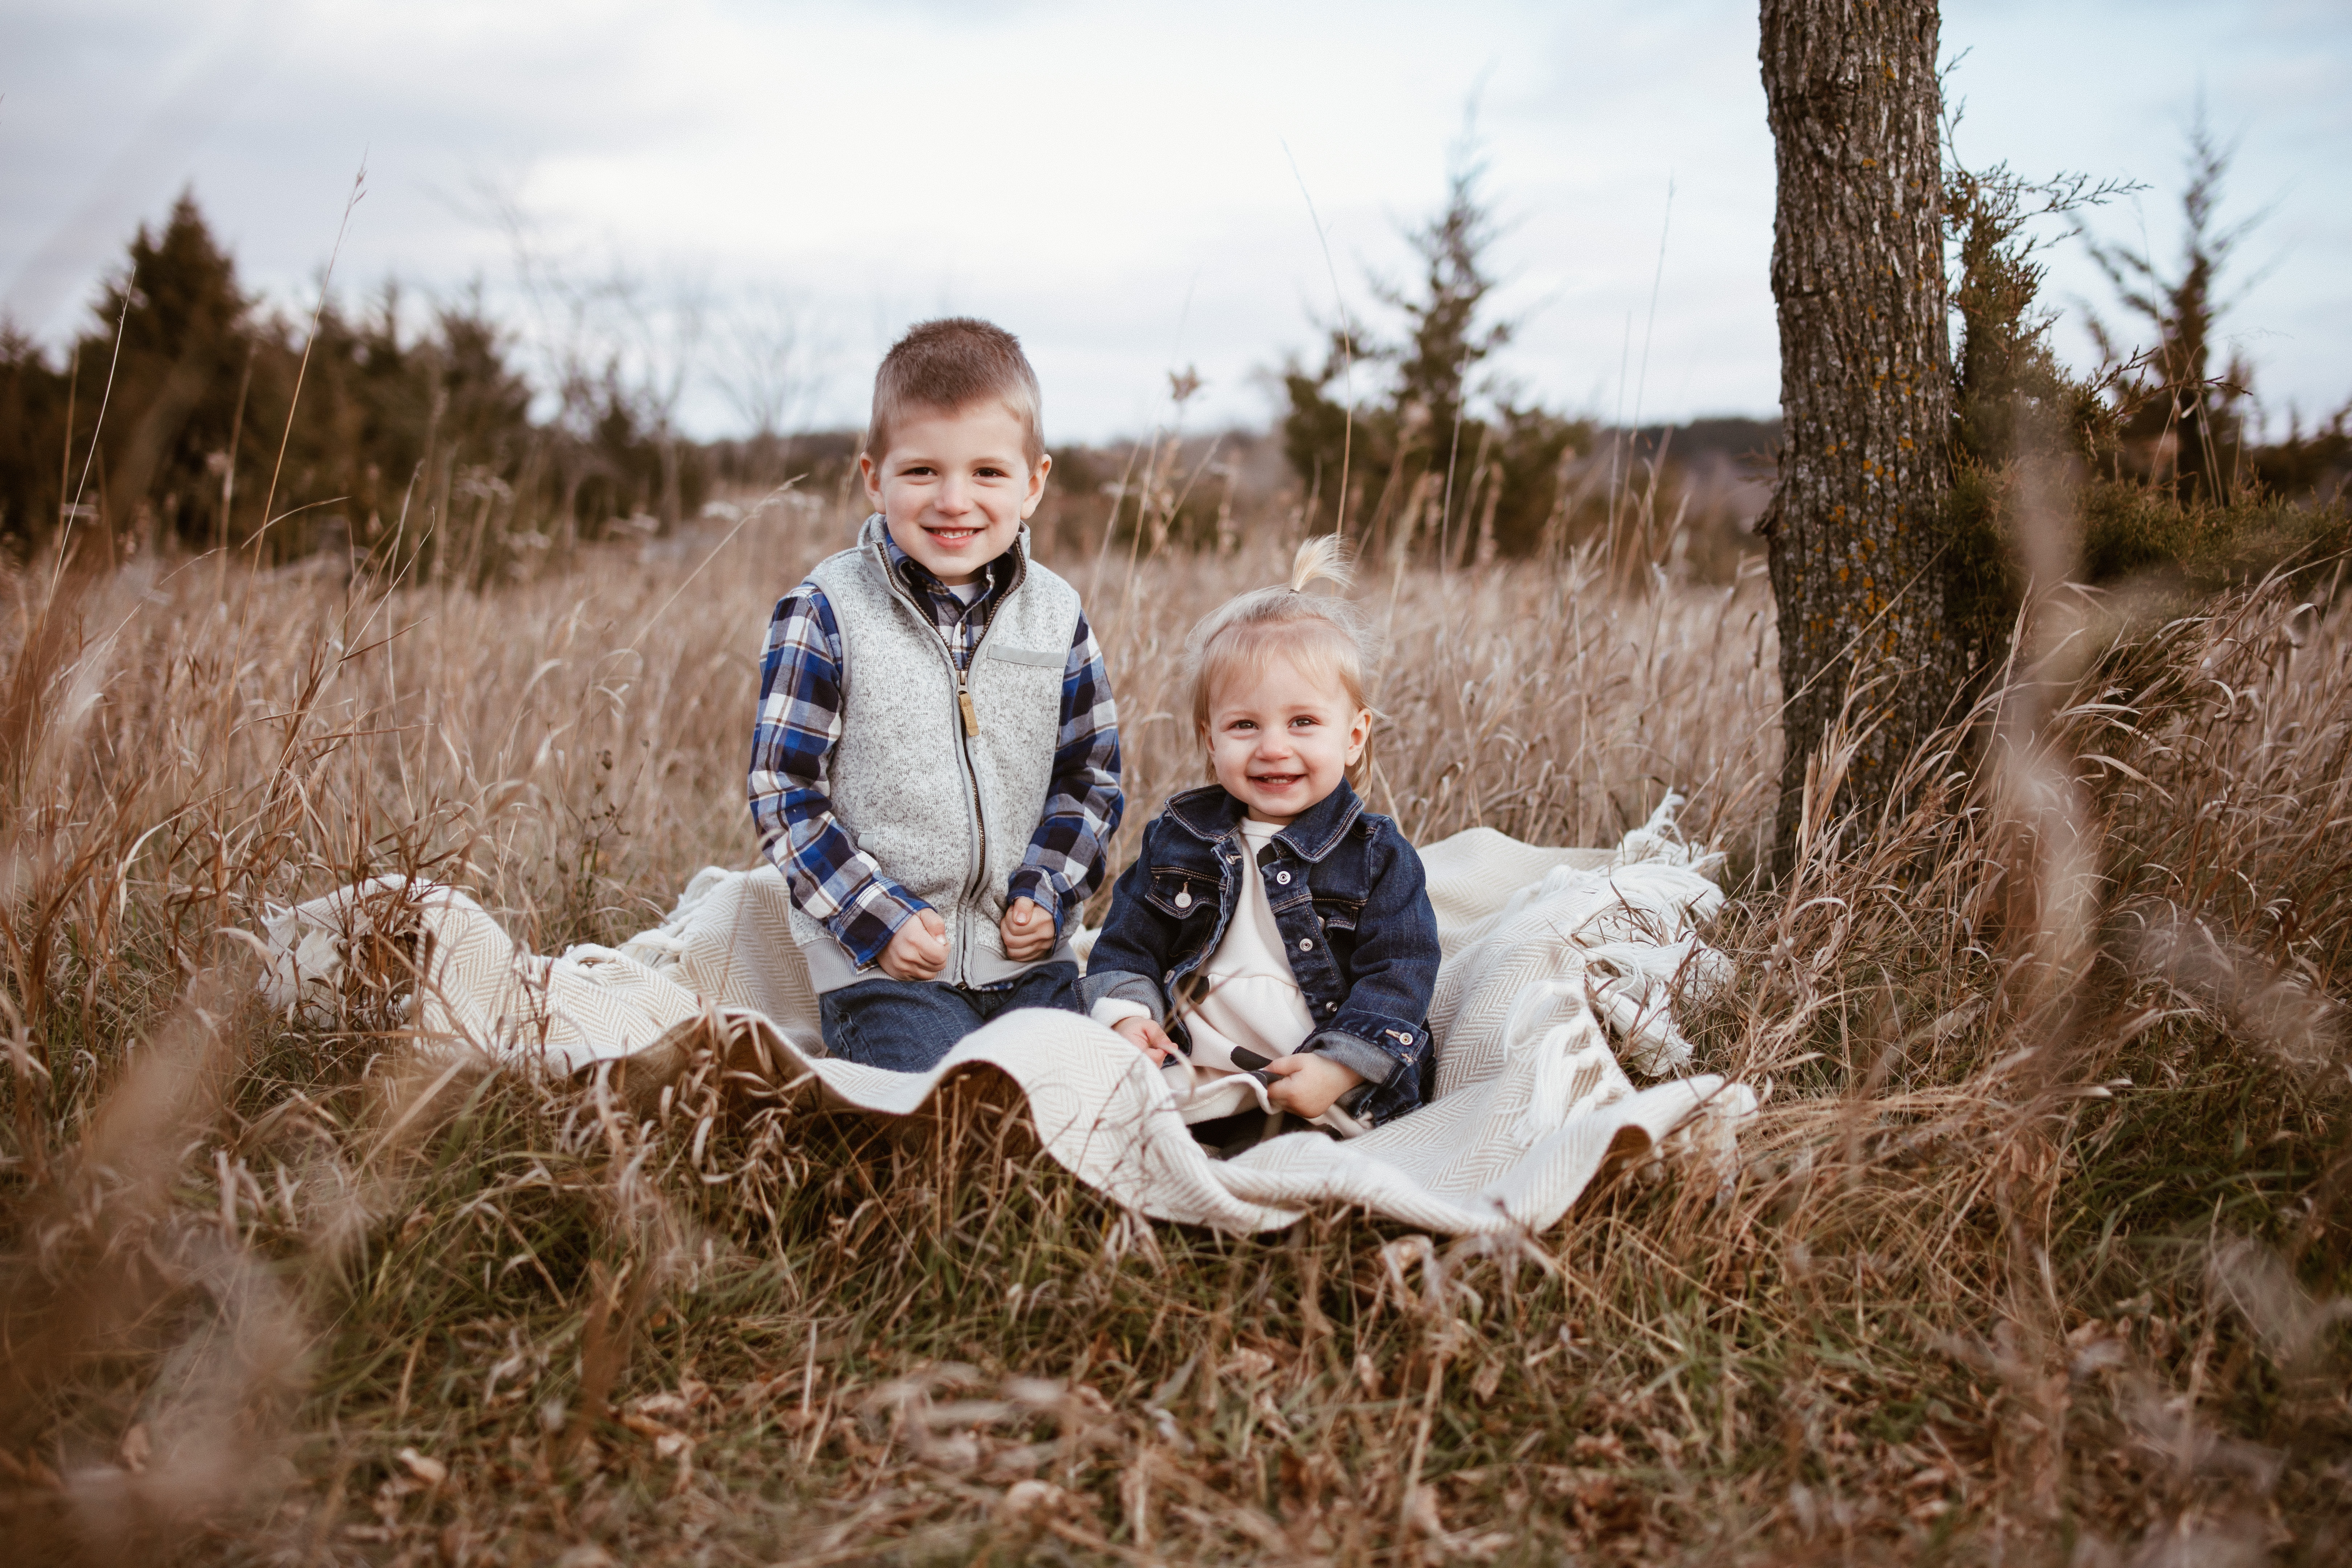 Kids Clothes - Midwest In Style